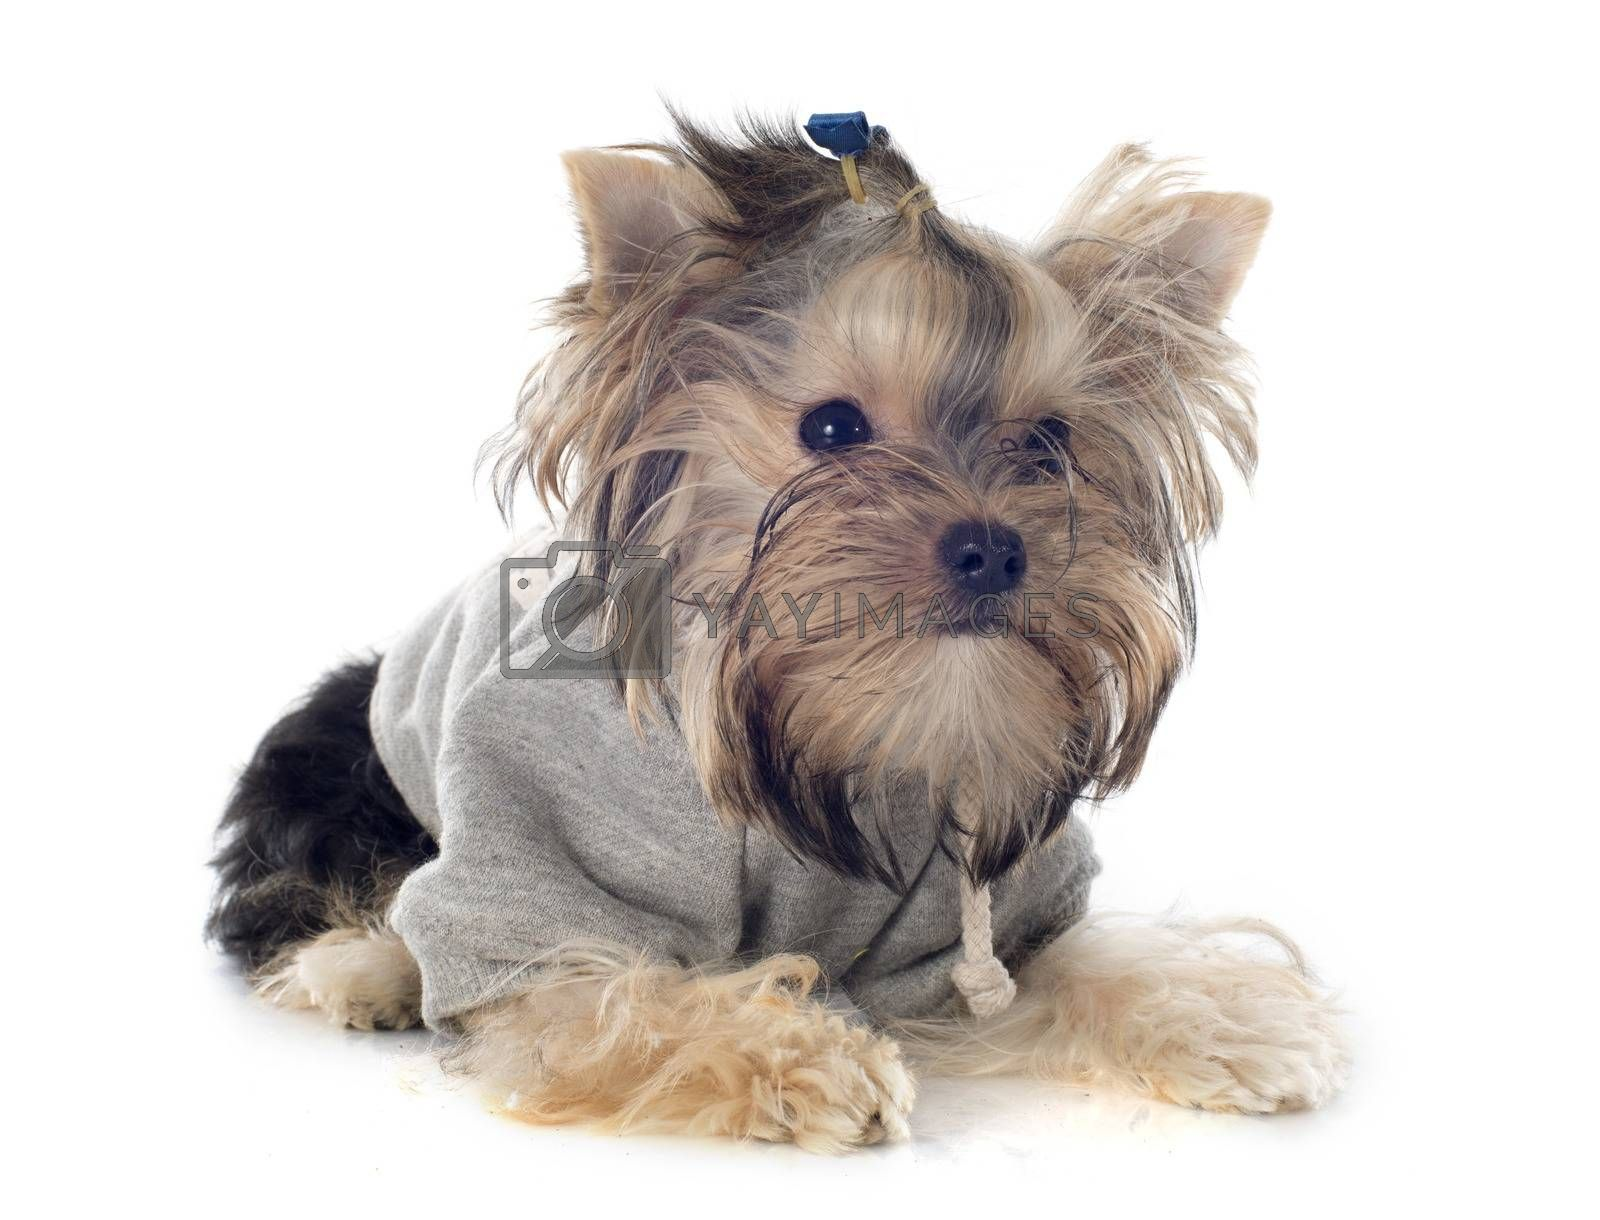 Royalty free image of yorkshire terrier by cynoclub